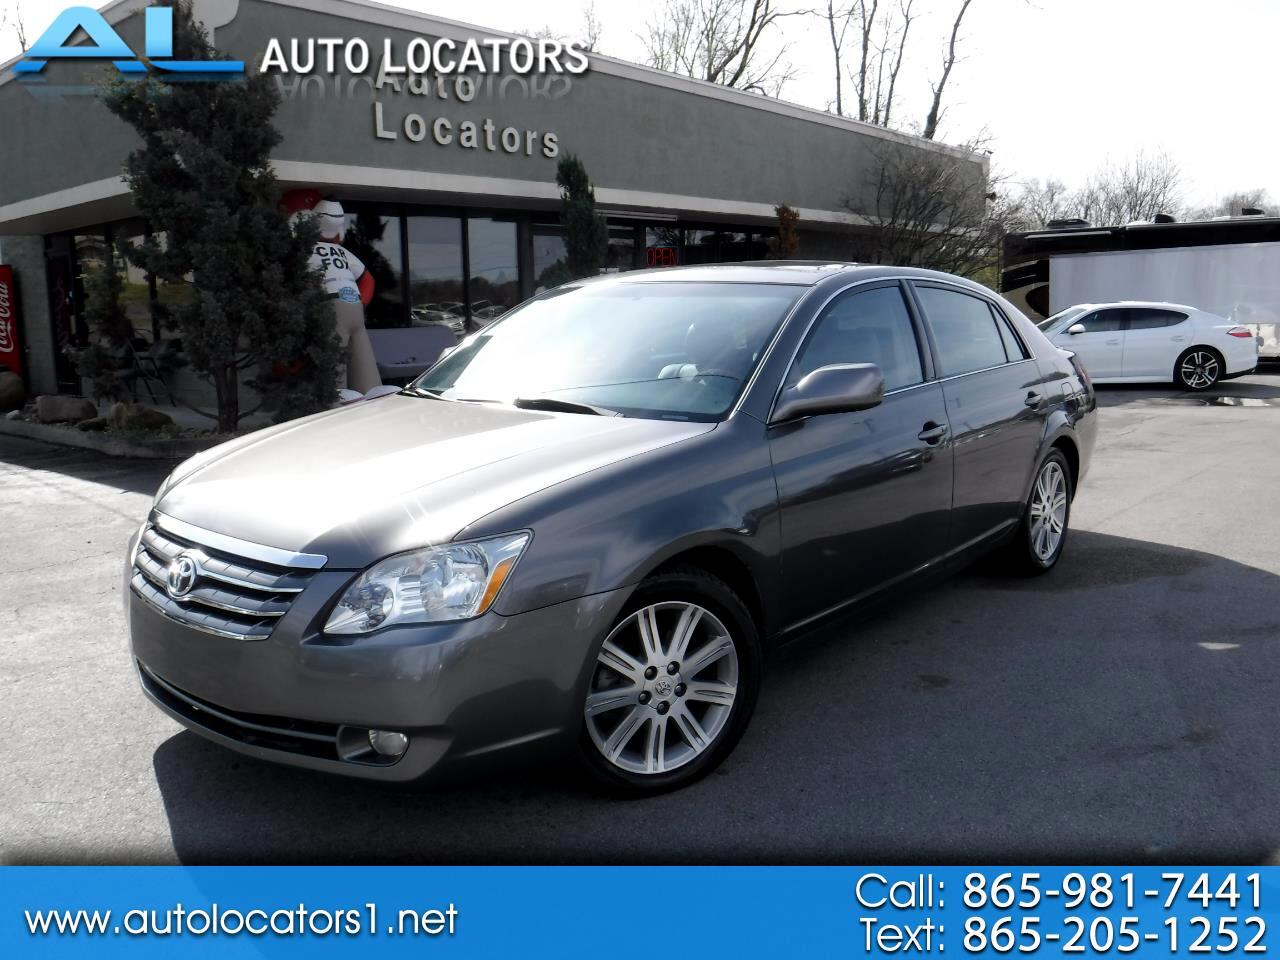 2006 Toyota Avalon 4dr Sdn XLS (Natl)